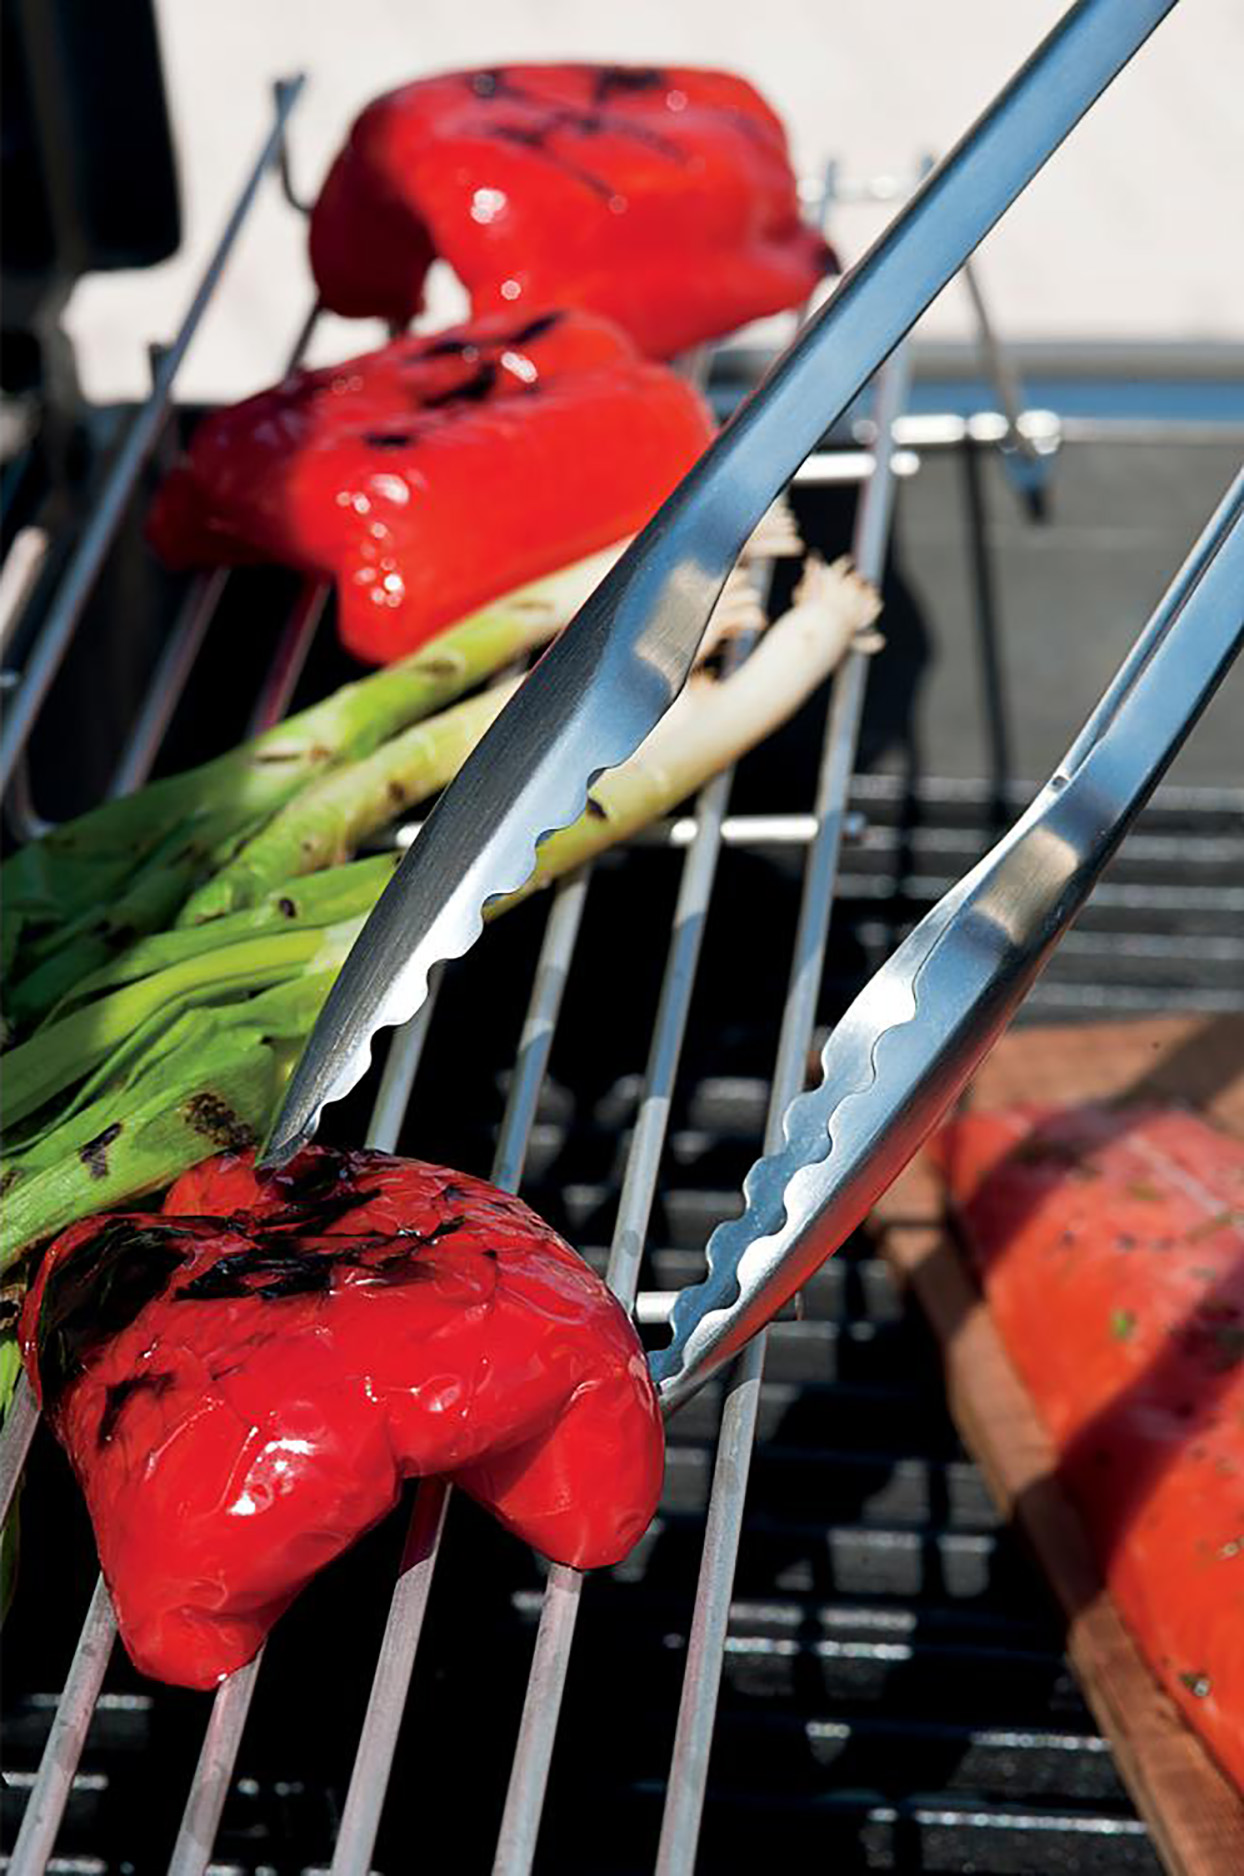 metal grill tongs turning a red pepper on a grill grate